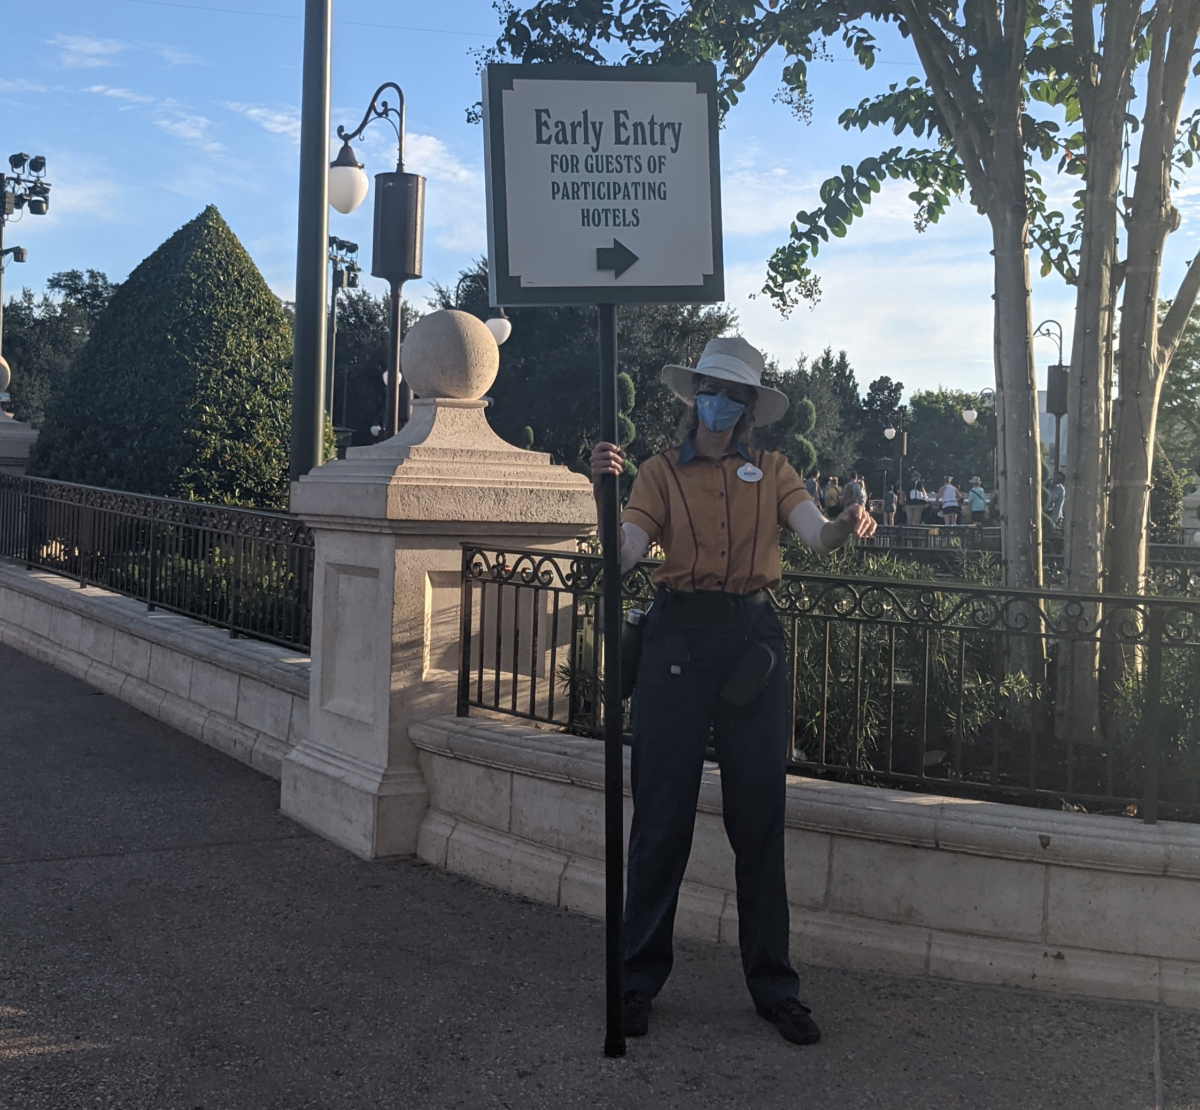 """Magic Kingdom Cast Member holding a sign that says """"Early Entry For Guests of Participating Hotels"""""""